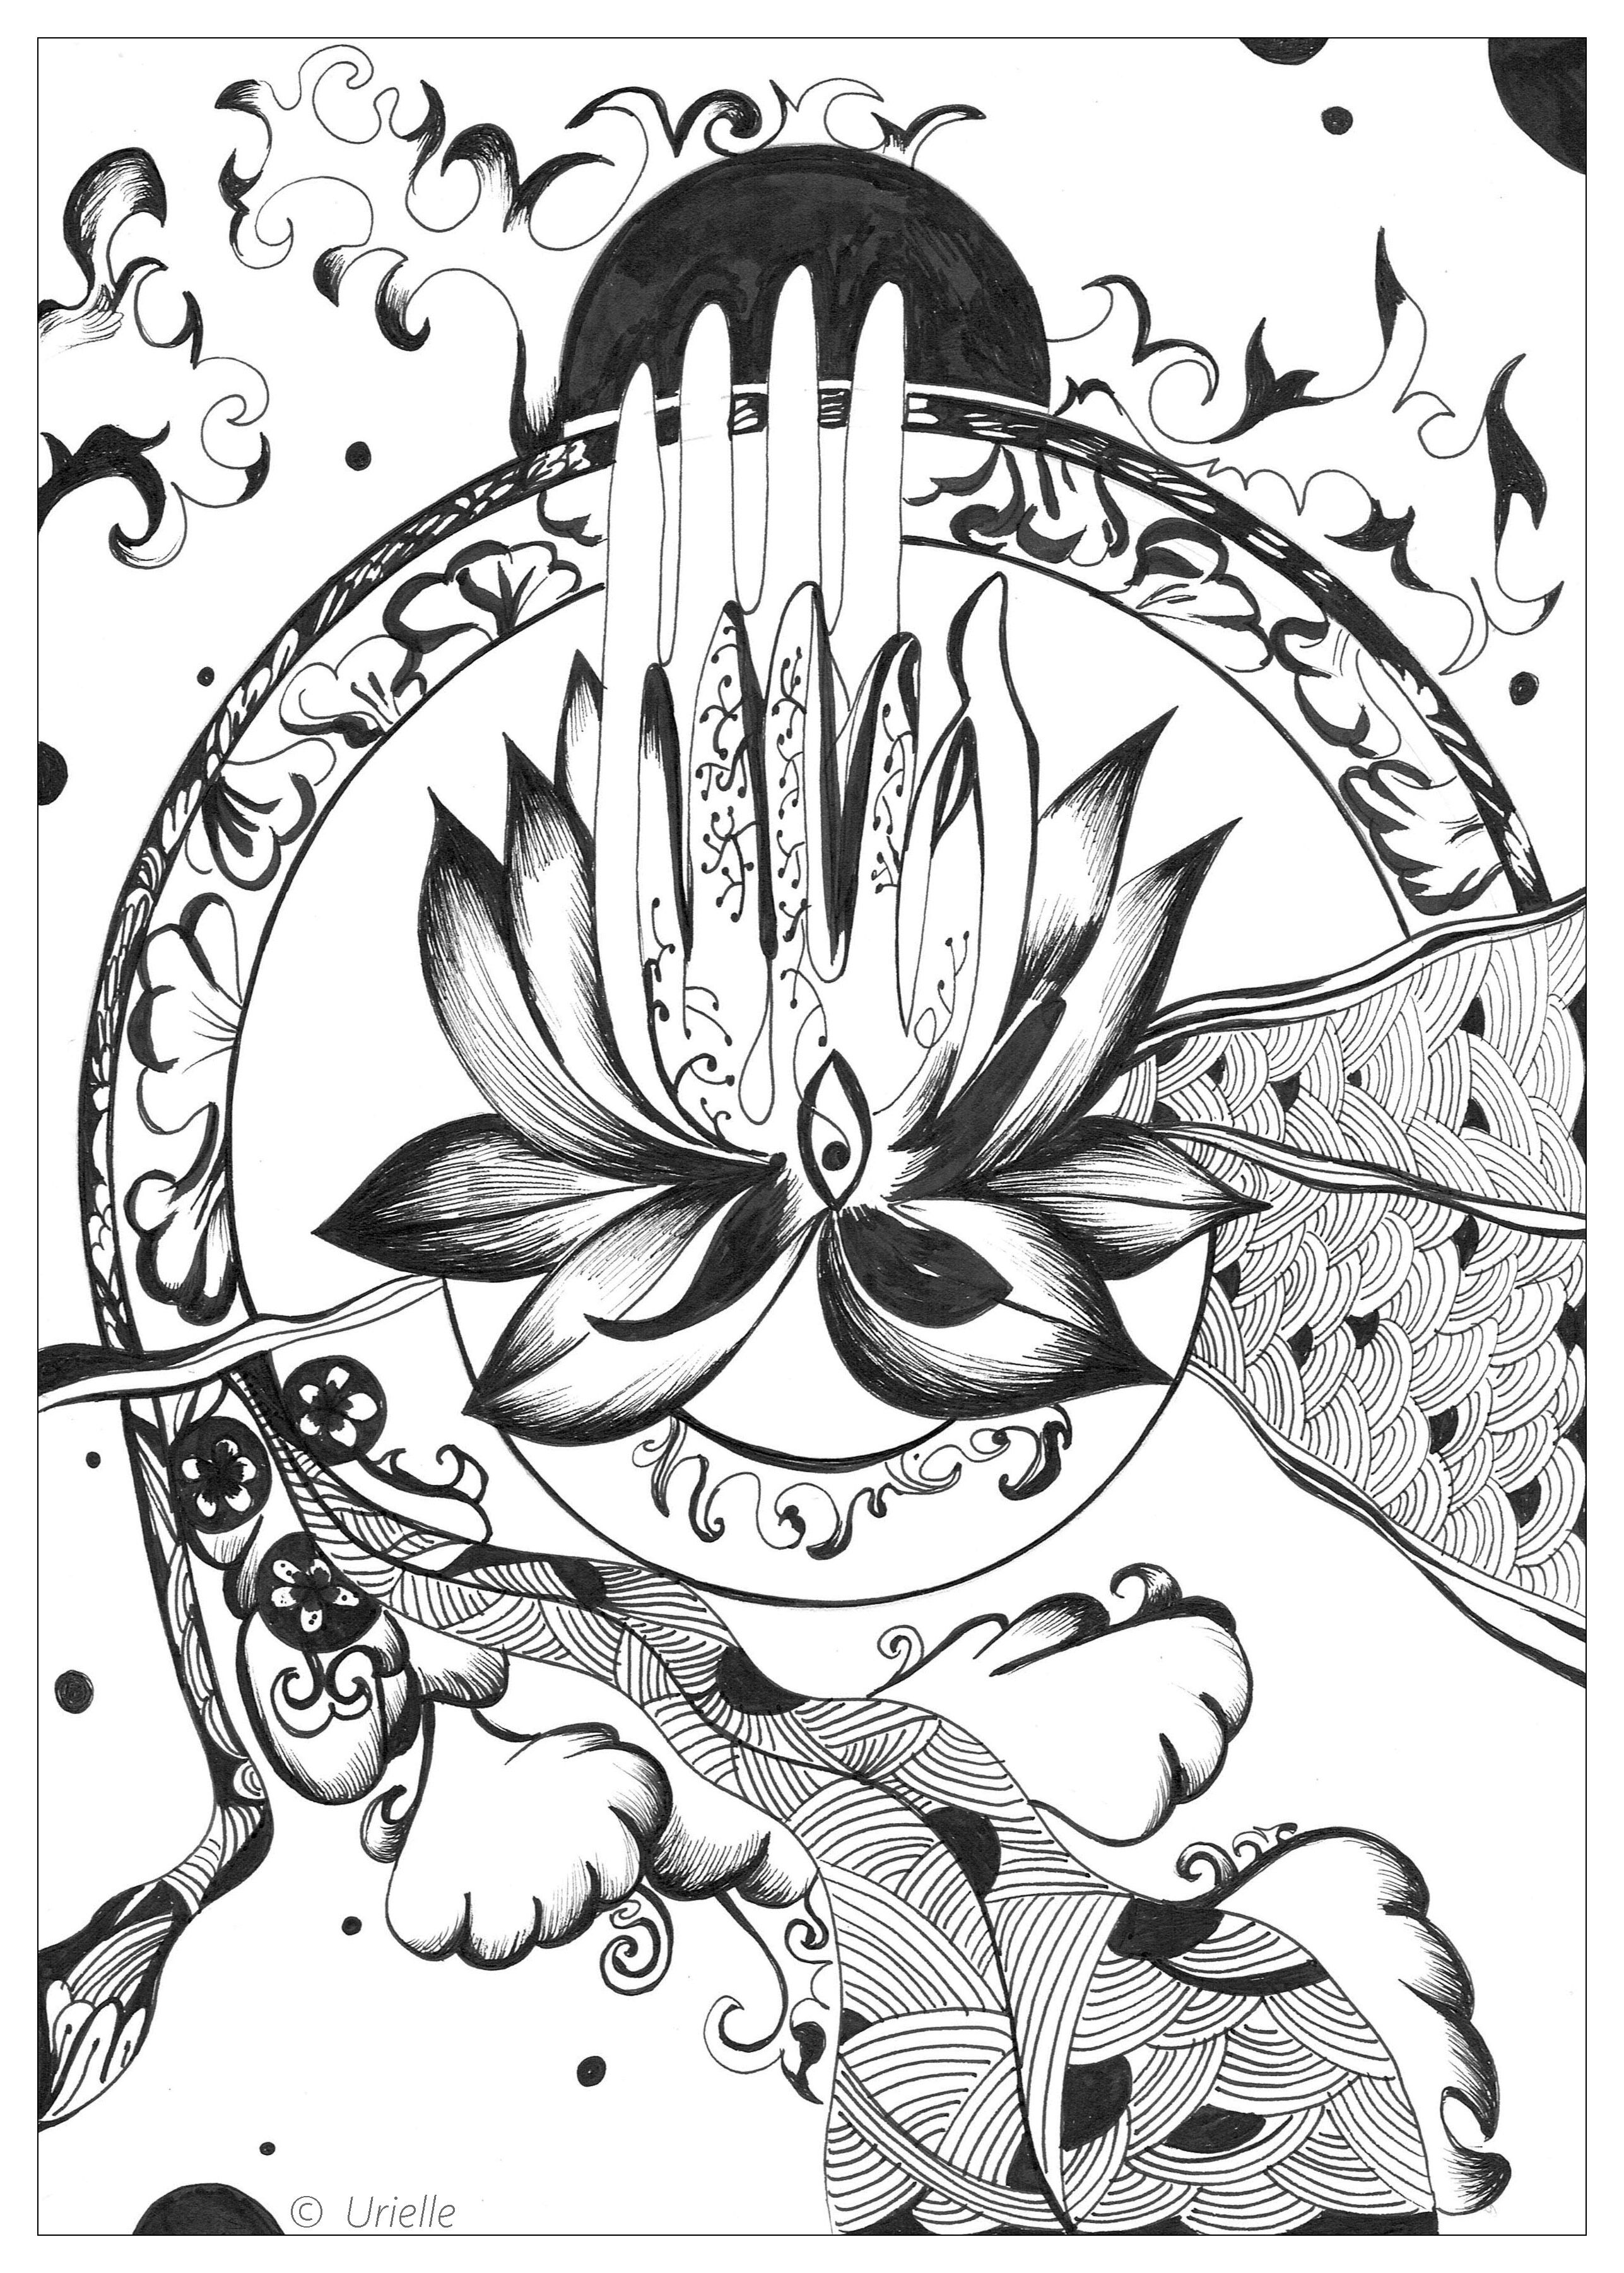 Printable coloring pages zen - Discover 3 New Incredible Coloring Pages Created By Our Partner Artist Urielle Force Sweet Contemplation Et Peace And Serenity